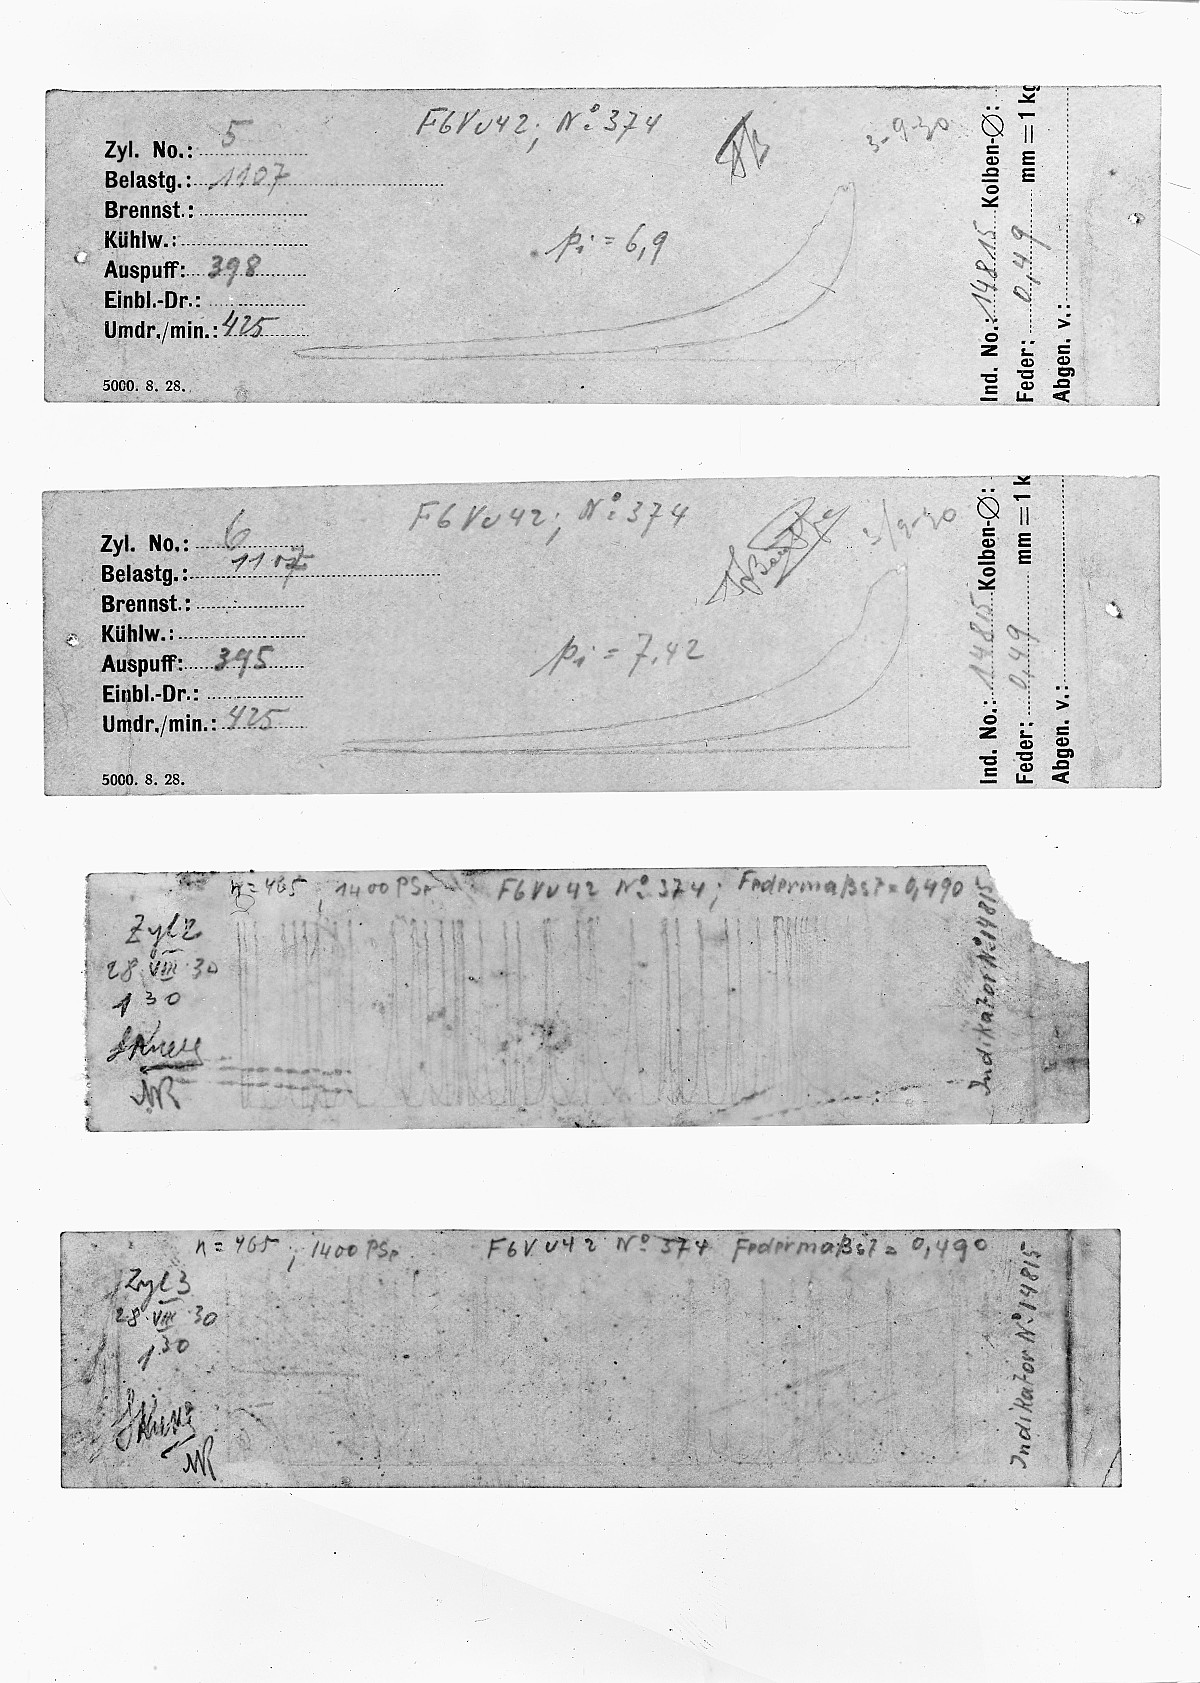 GFA 16/15178: Diagrams in the acceptance reports of GOMZY-LENINGRAD engine